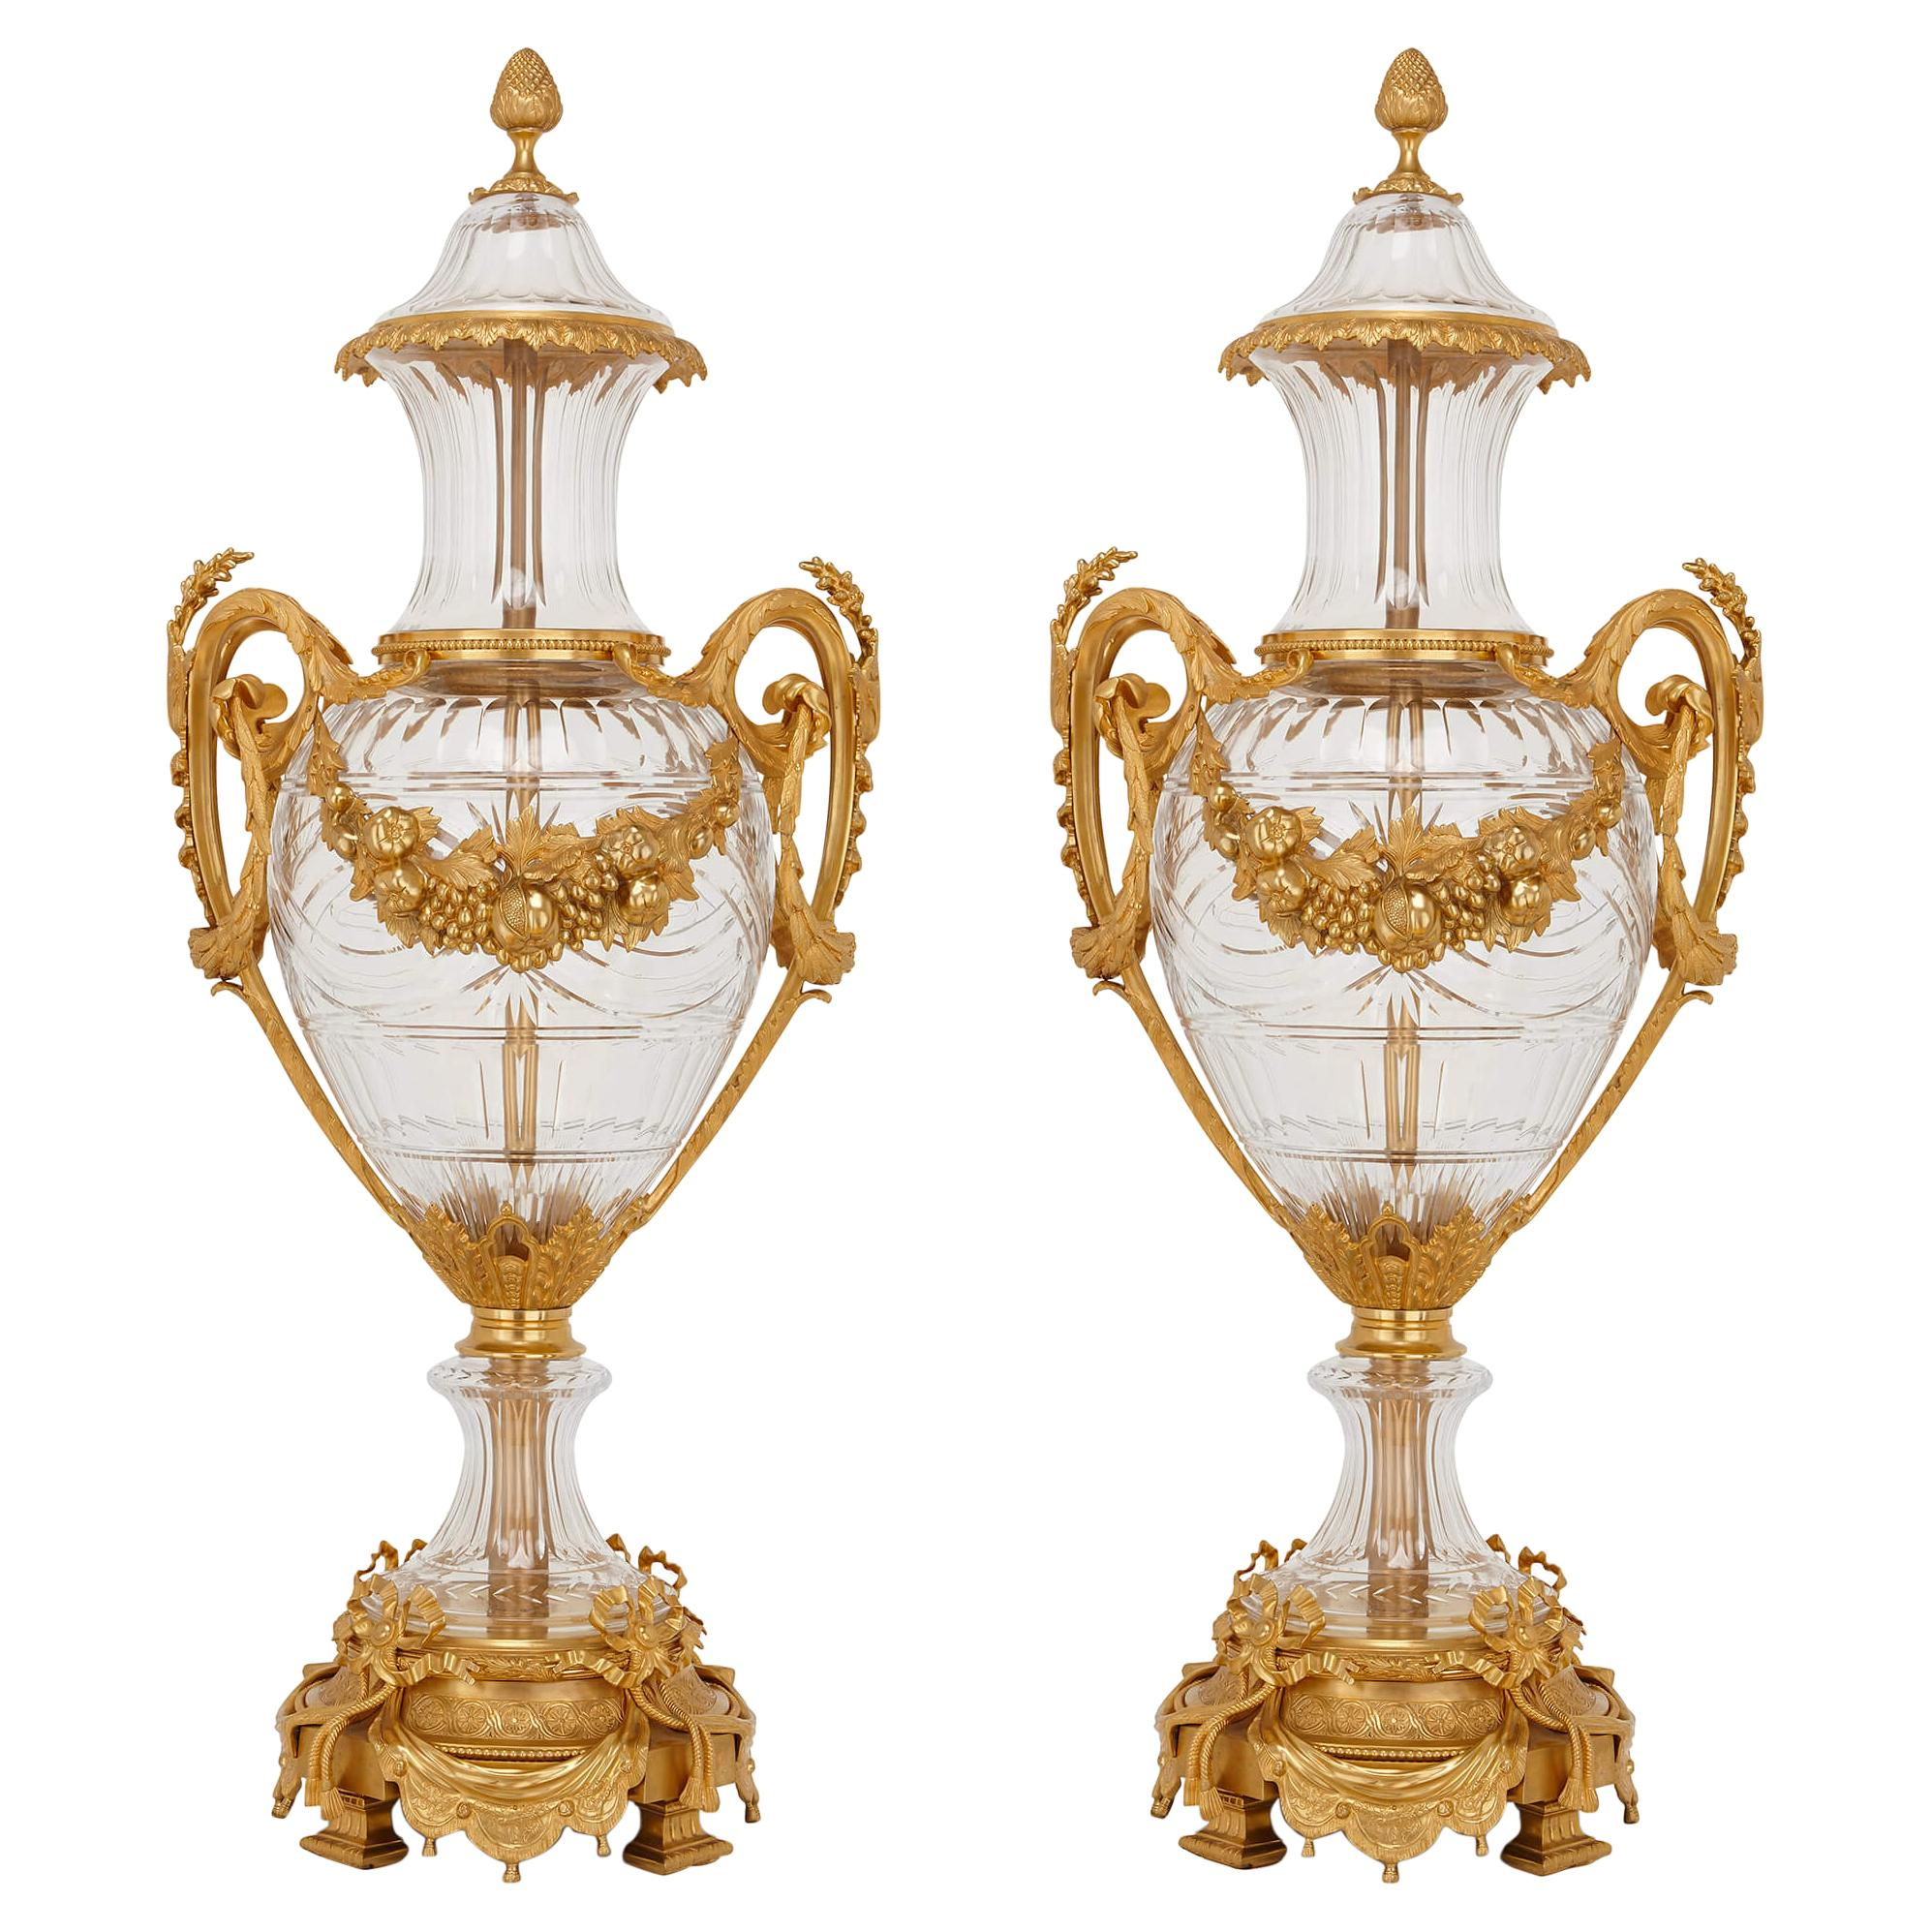 Pair of Large Glass and Gilt Bronze Vases in the Neoclassical Style